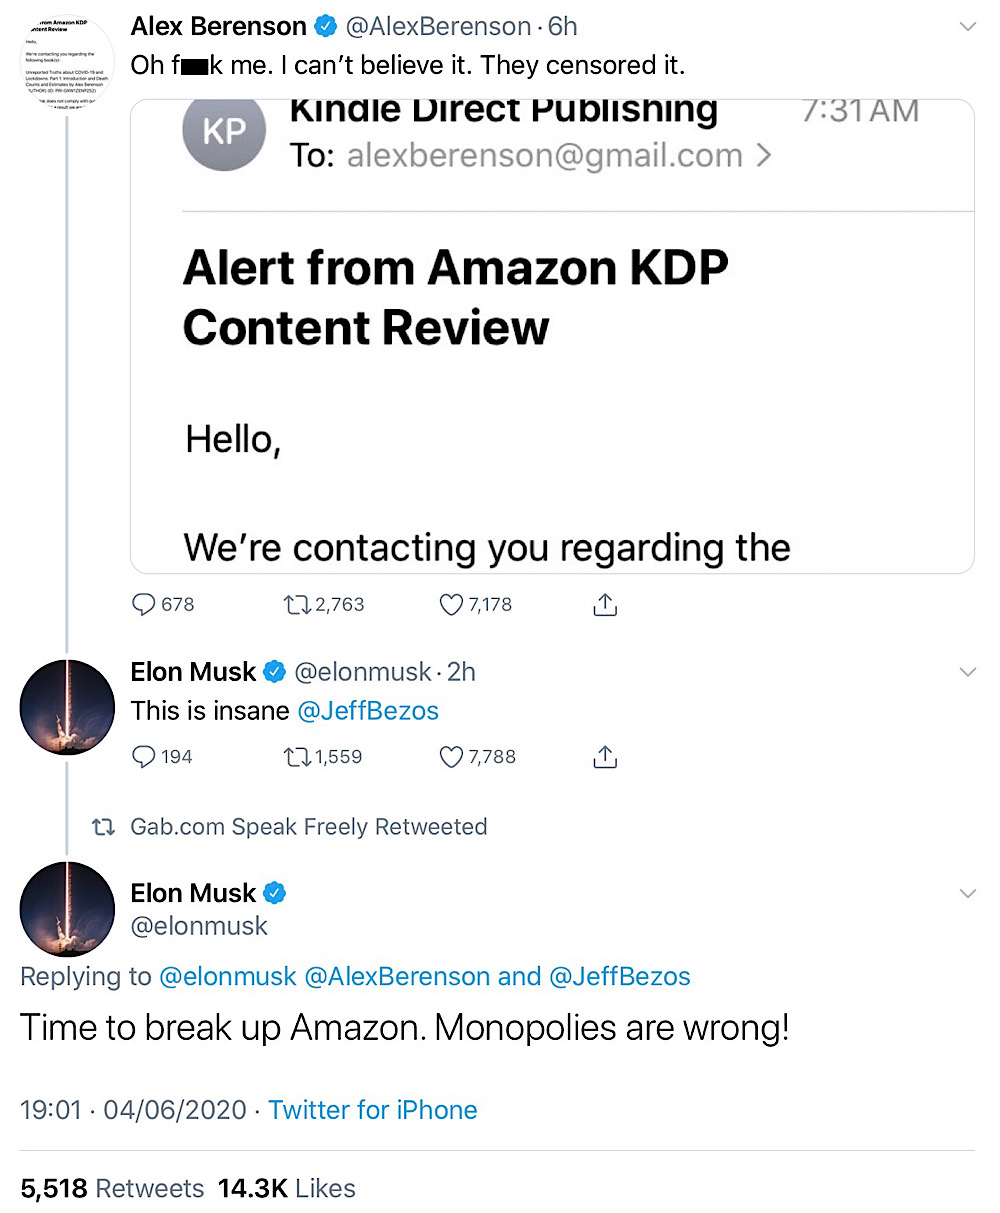 Elon Musk called for the break up of Amazon (Twitter - @elonmusk)